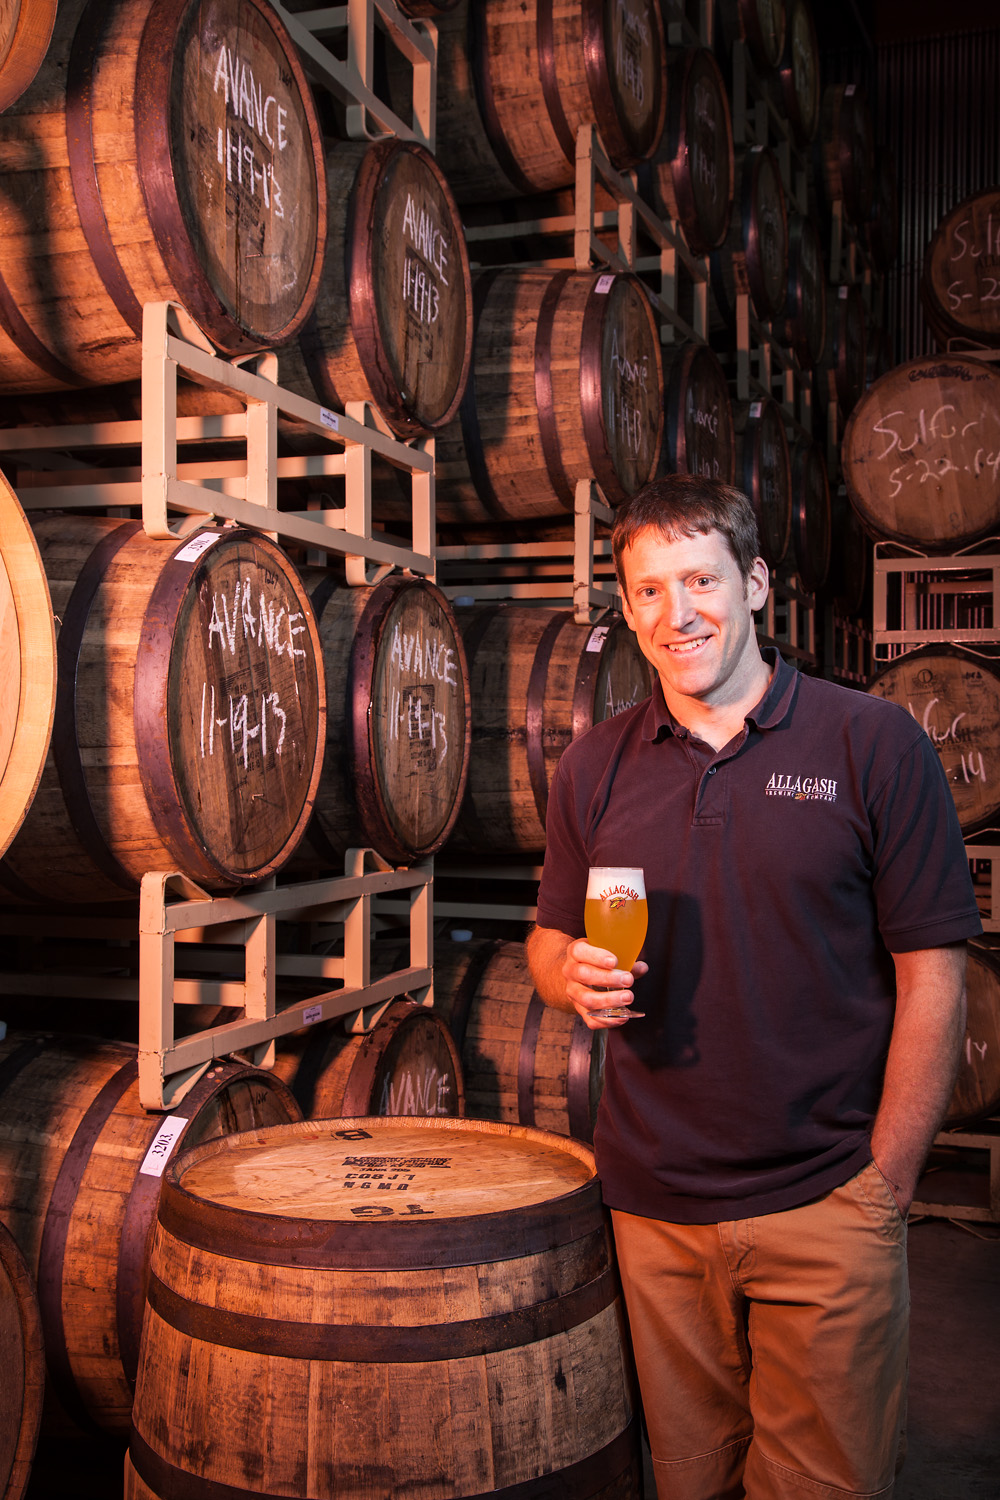 Jason Perkins, Brewmaster Allagash Brewing Co. Portland, ME Established in 1995